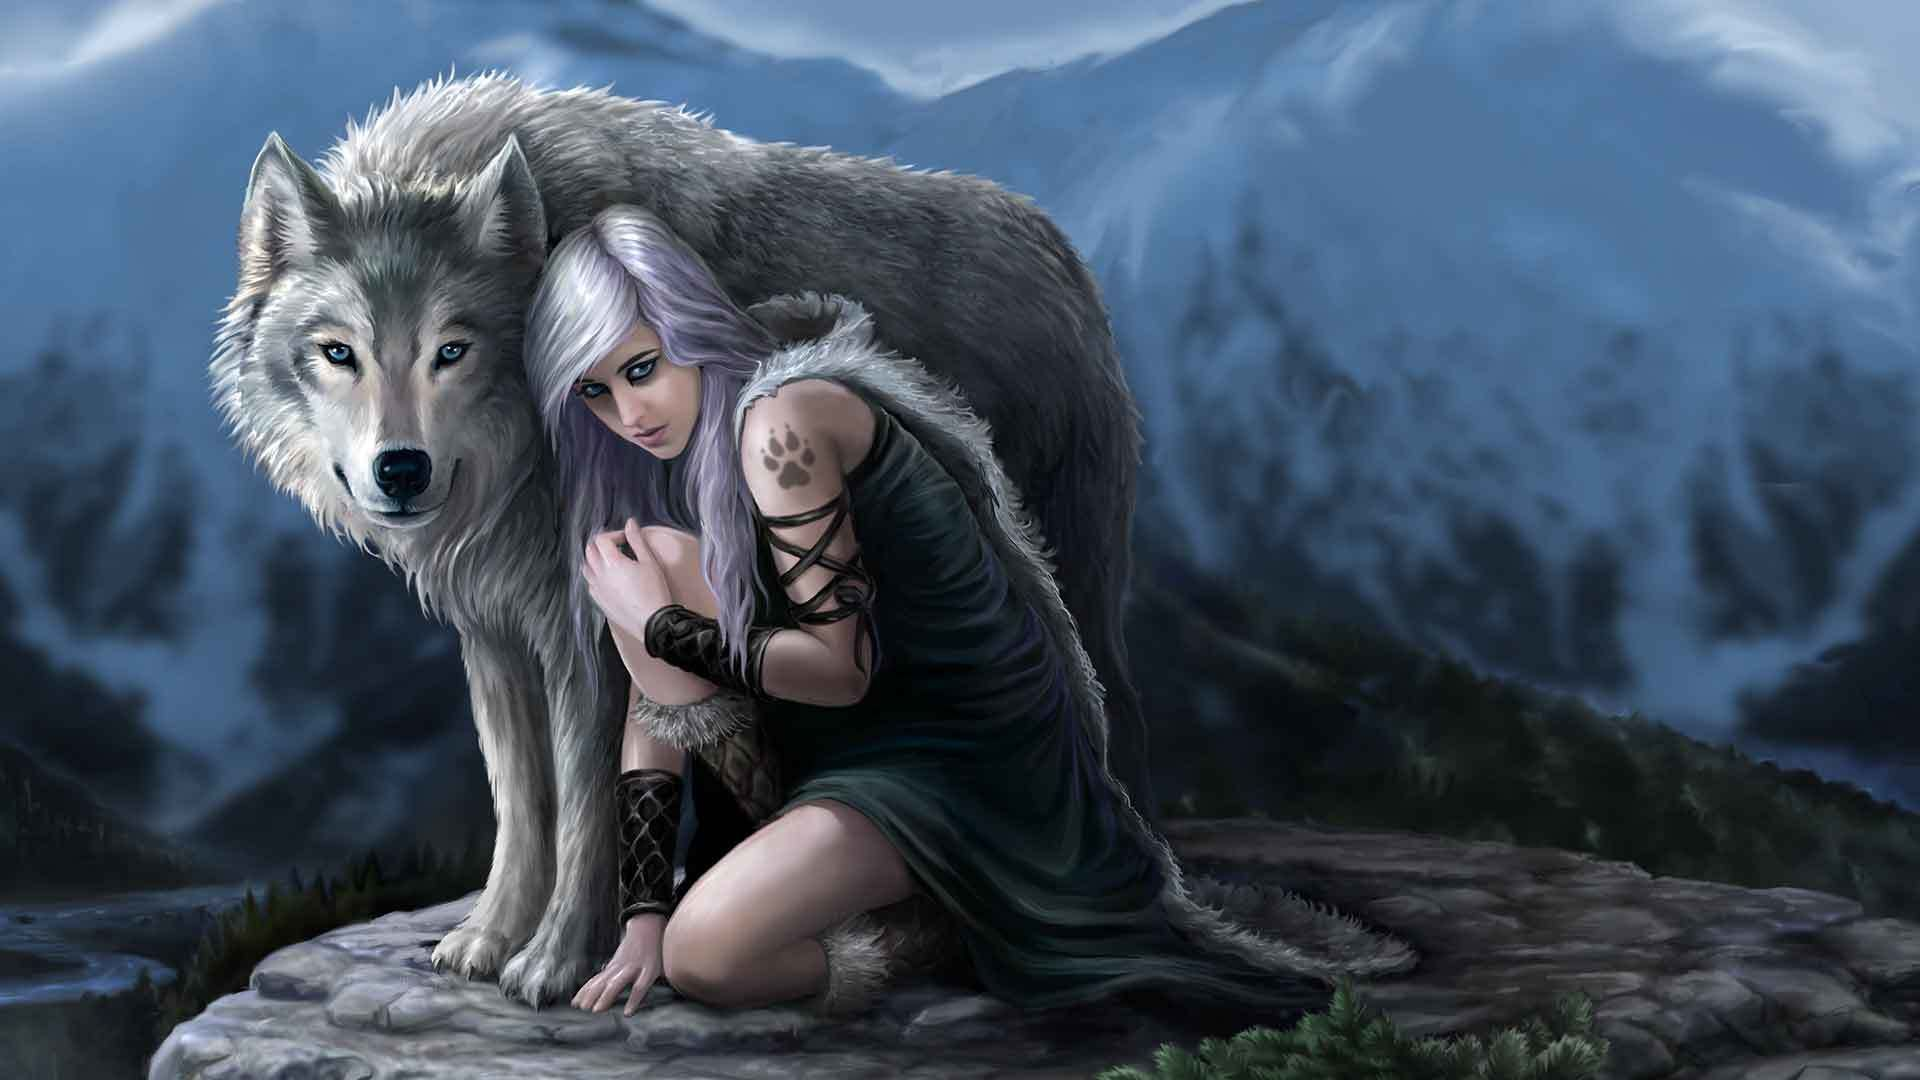 anne stokes wallpaper for - photo #13